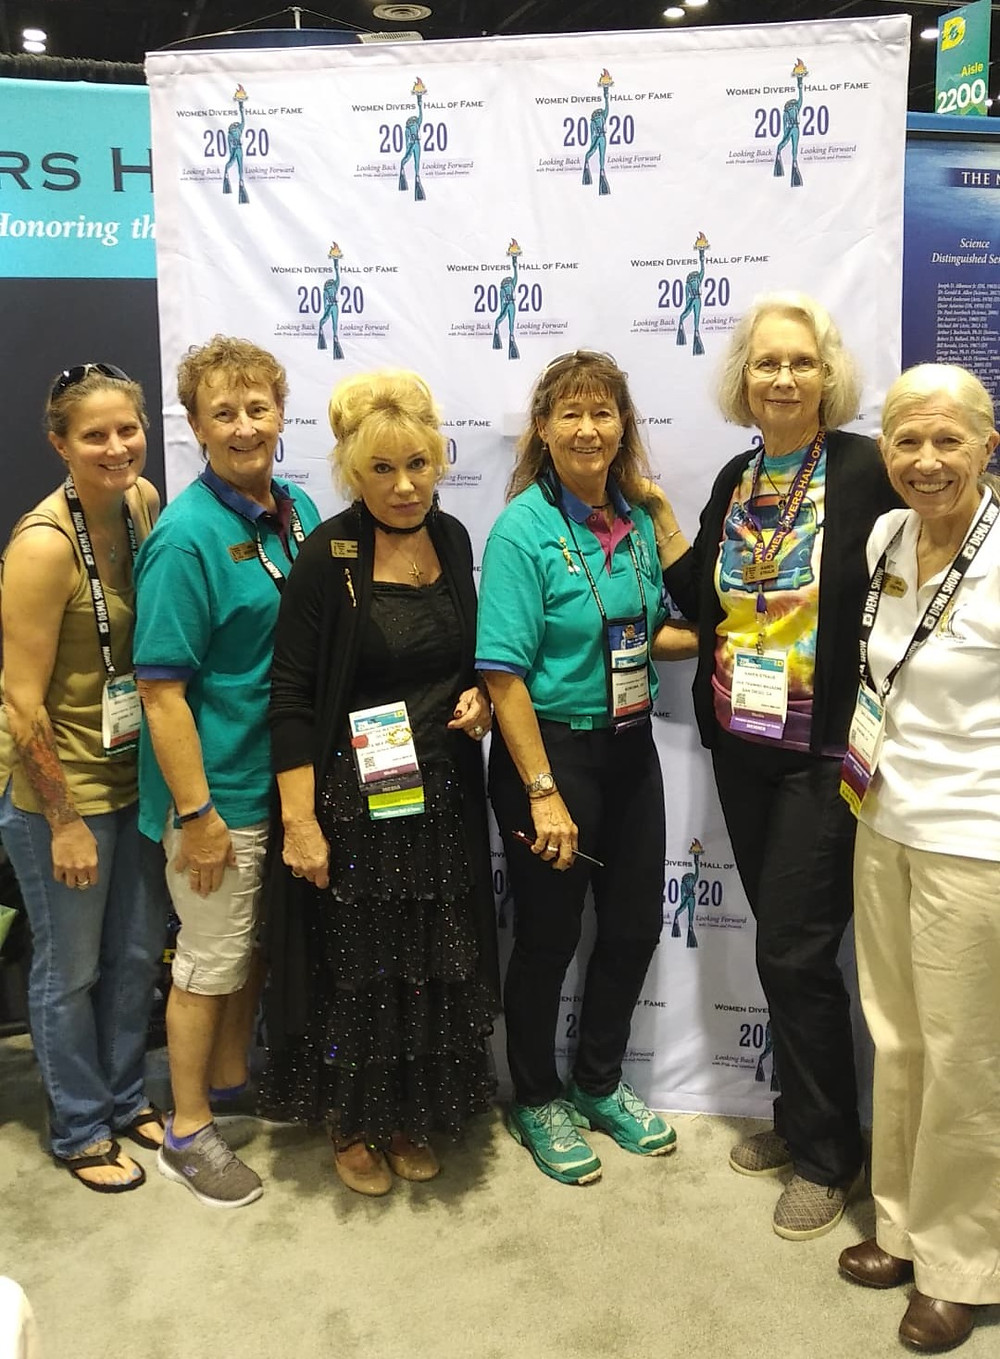 women_divers_hall_of_fame_dema_dive_show_orlando_2019